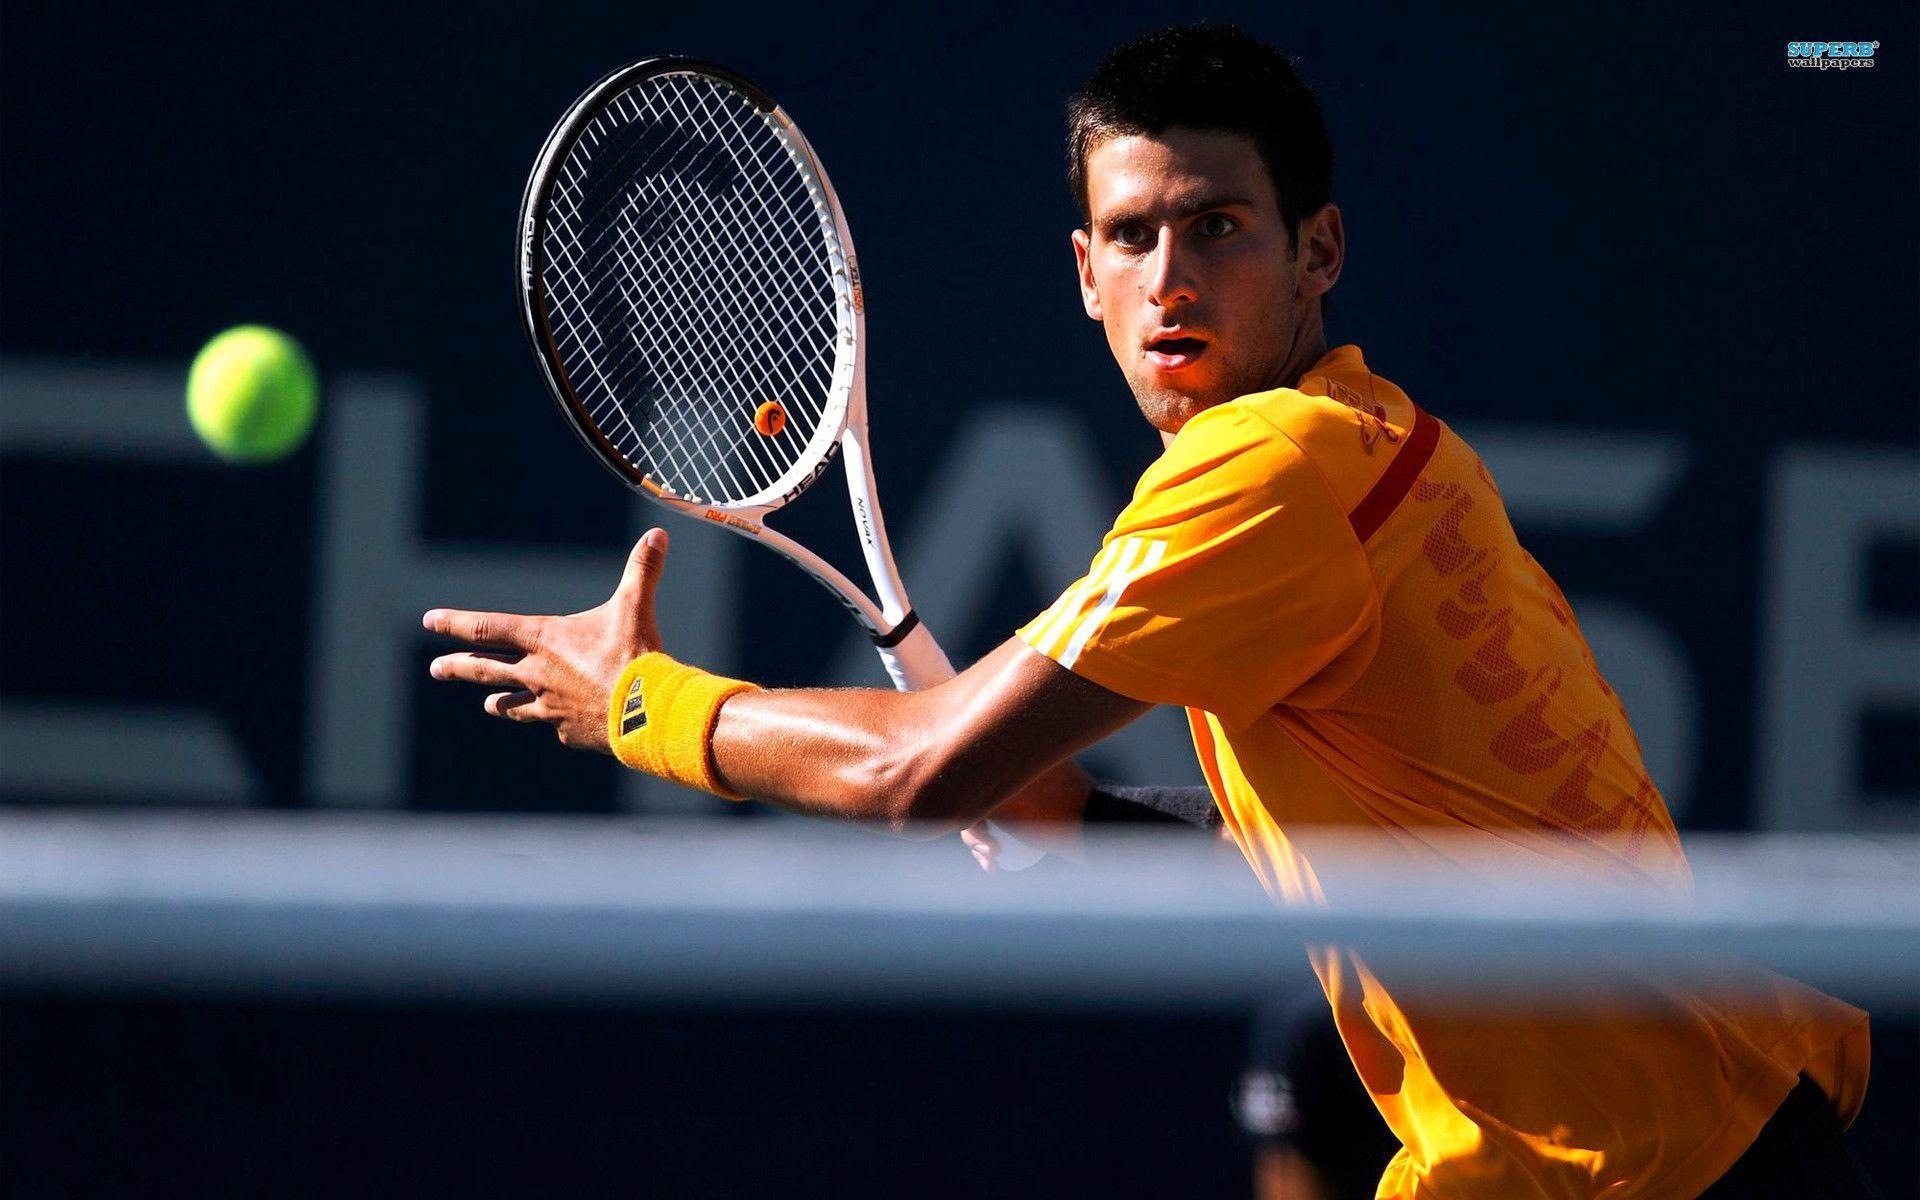 Novak Djokovic Wallpapers - HD Wallpapers Inn